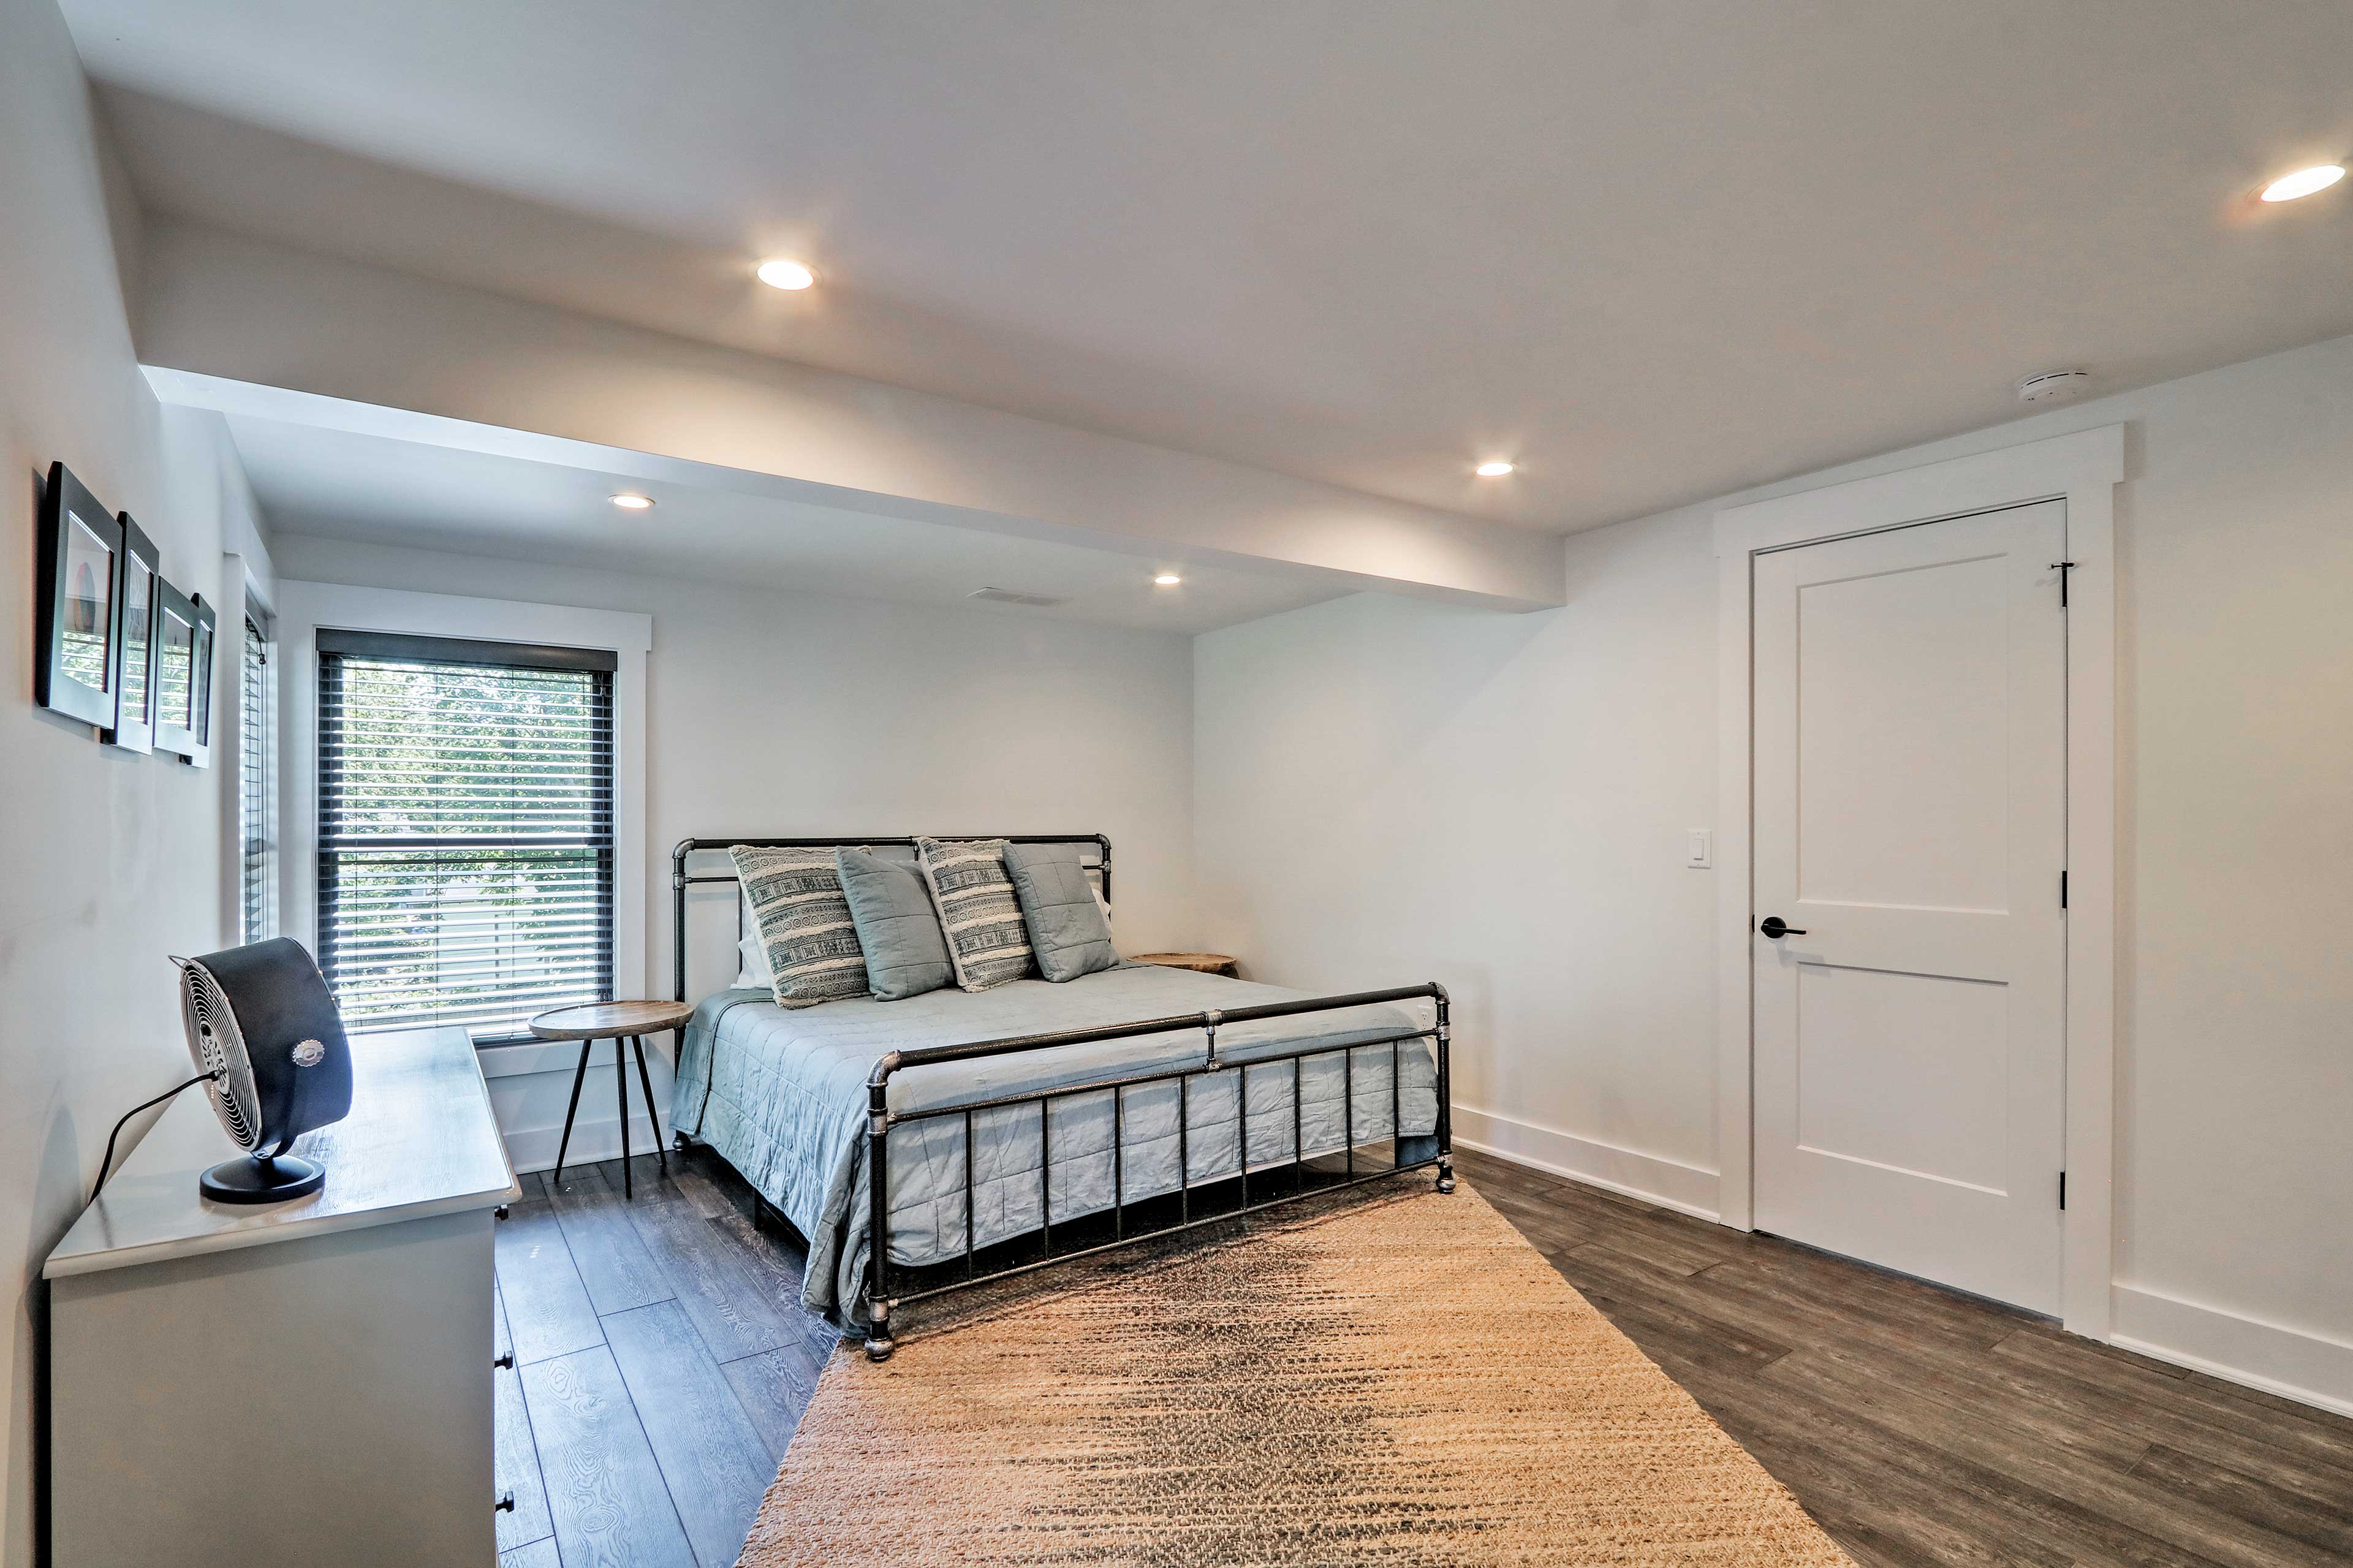 With 8 bedrooms, this home has a comfortable space for everyone!